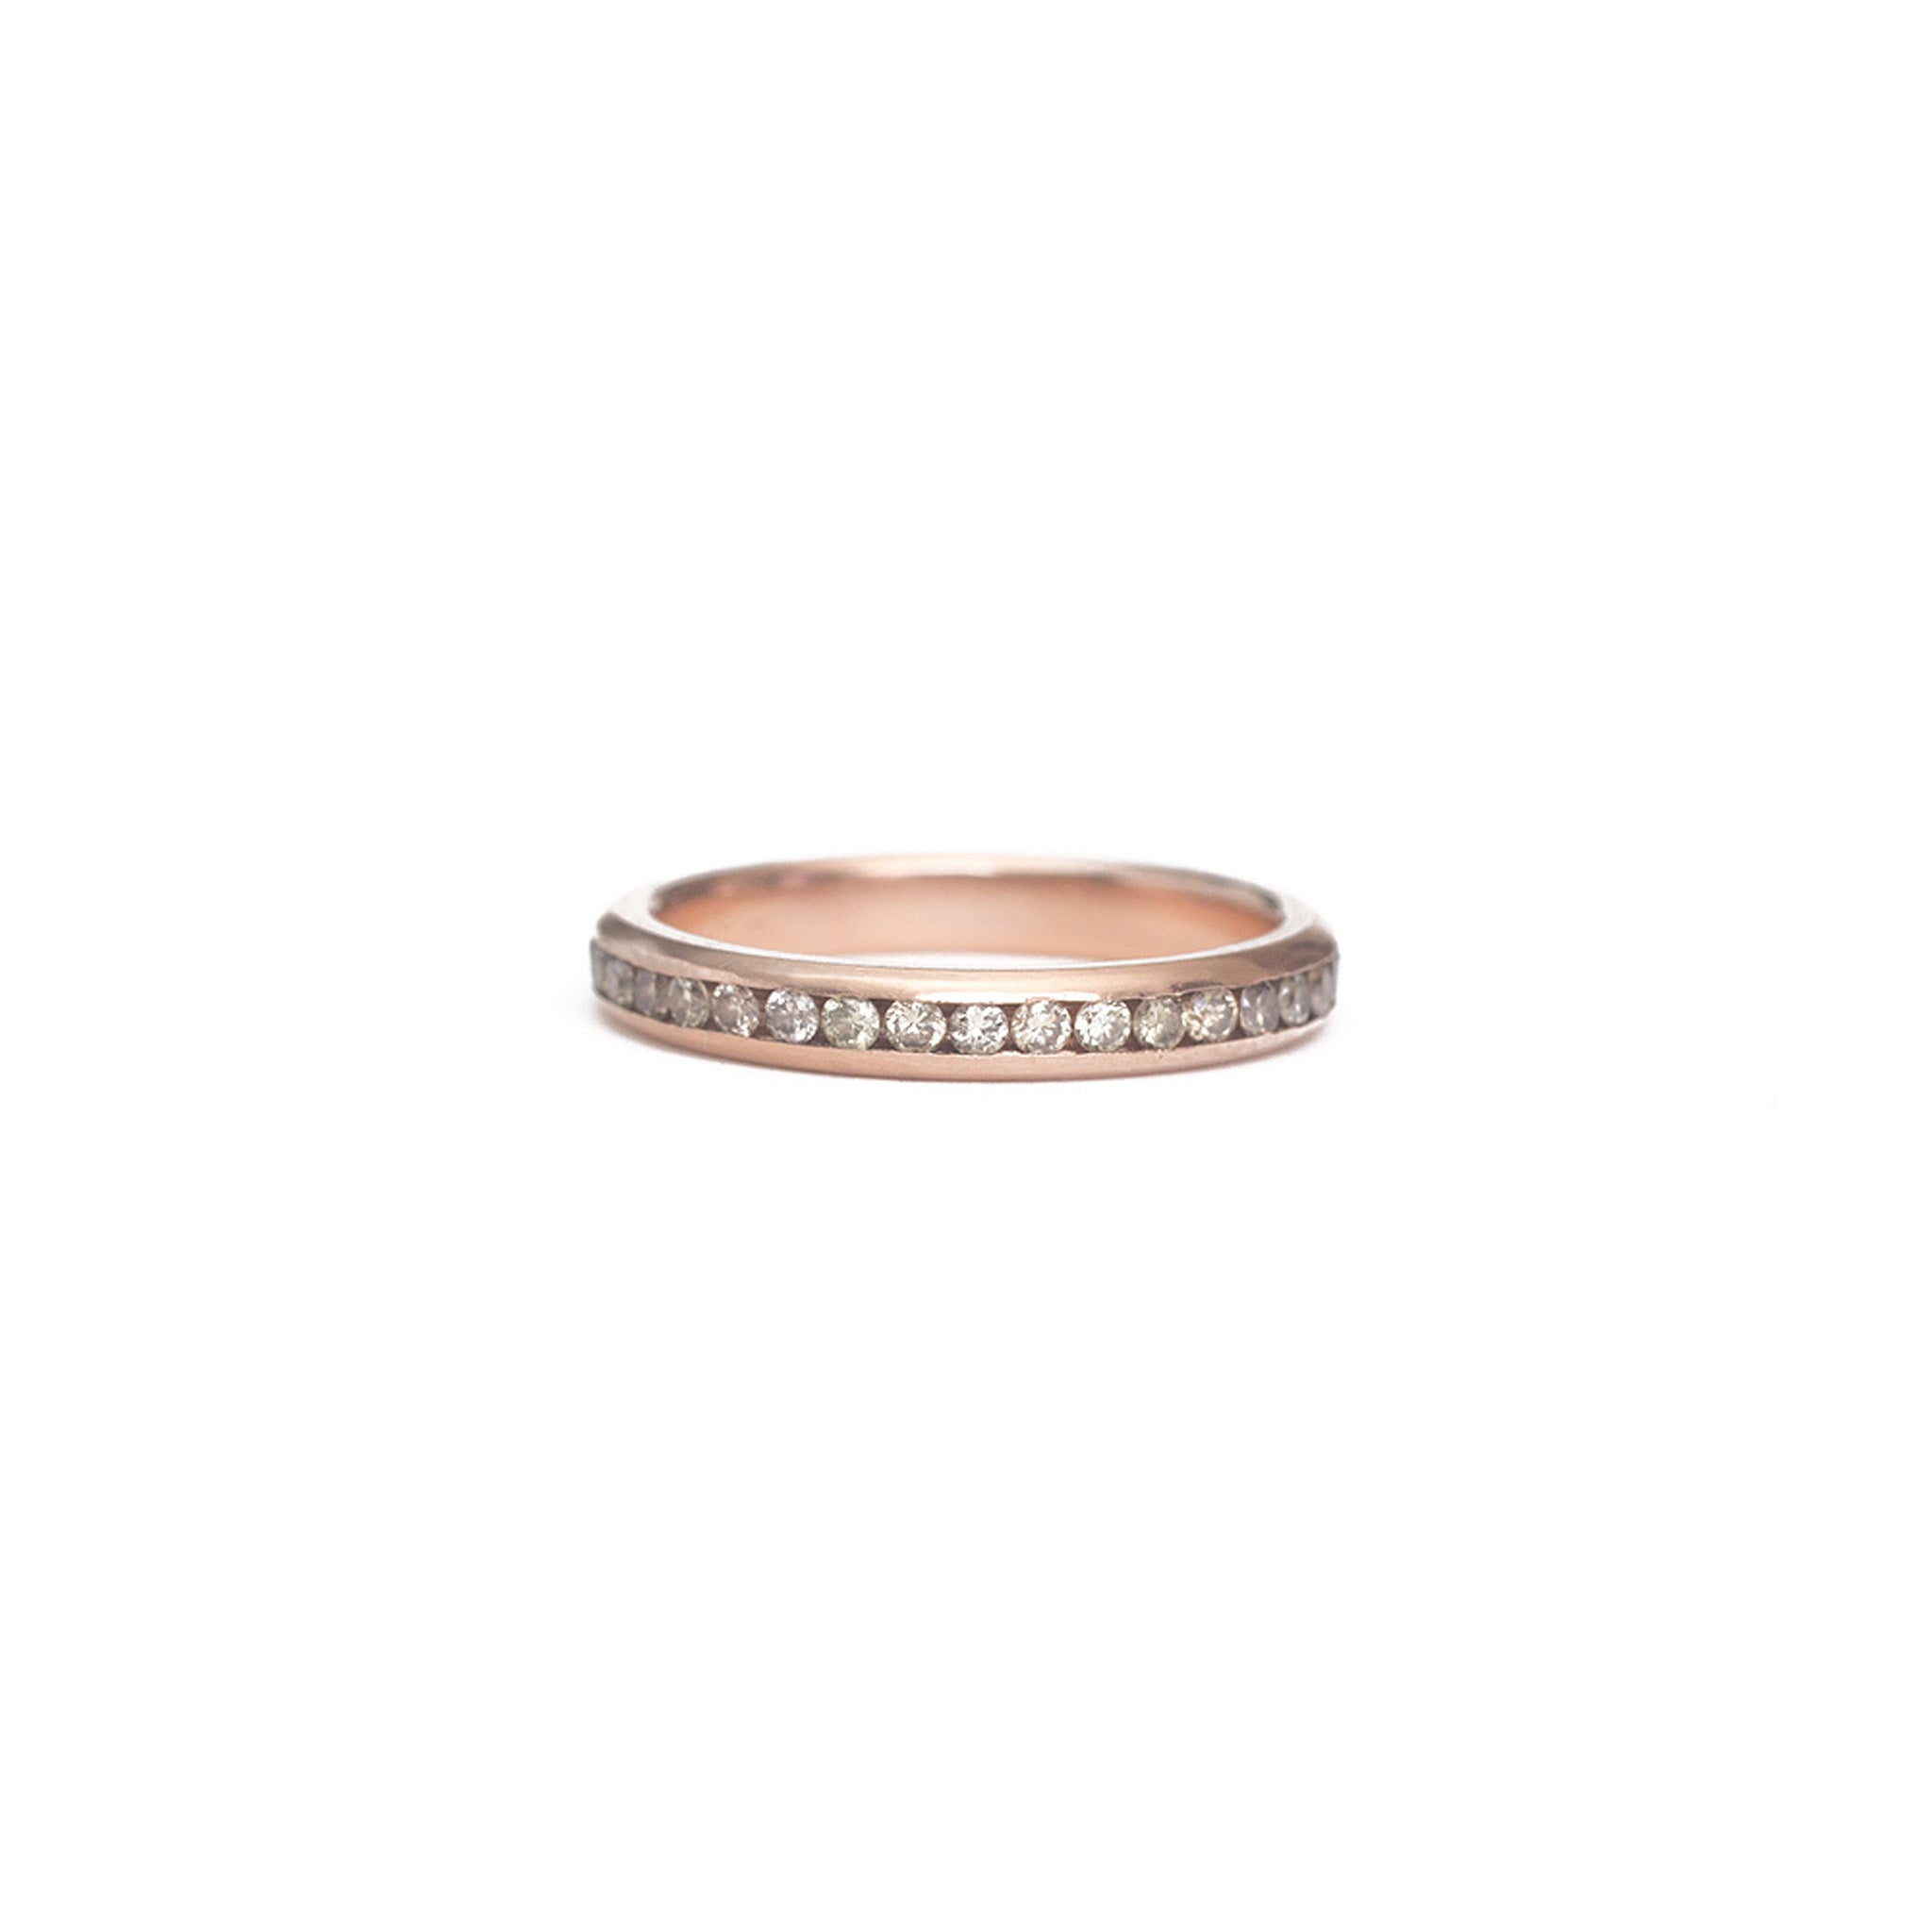 Champagne Diamond Eternity Ring - 1.5mm